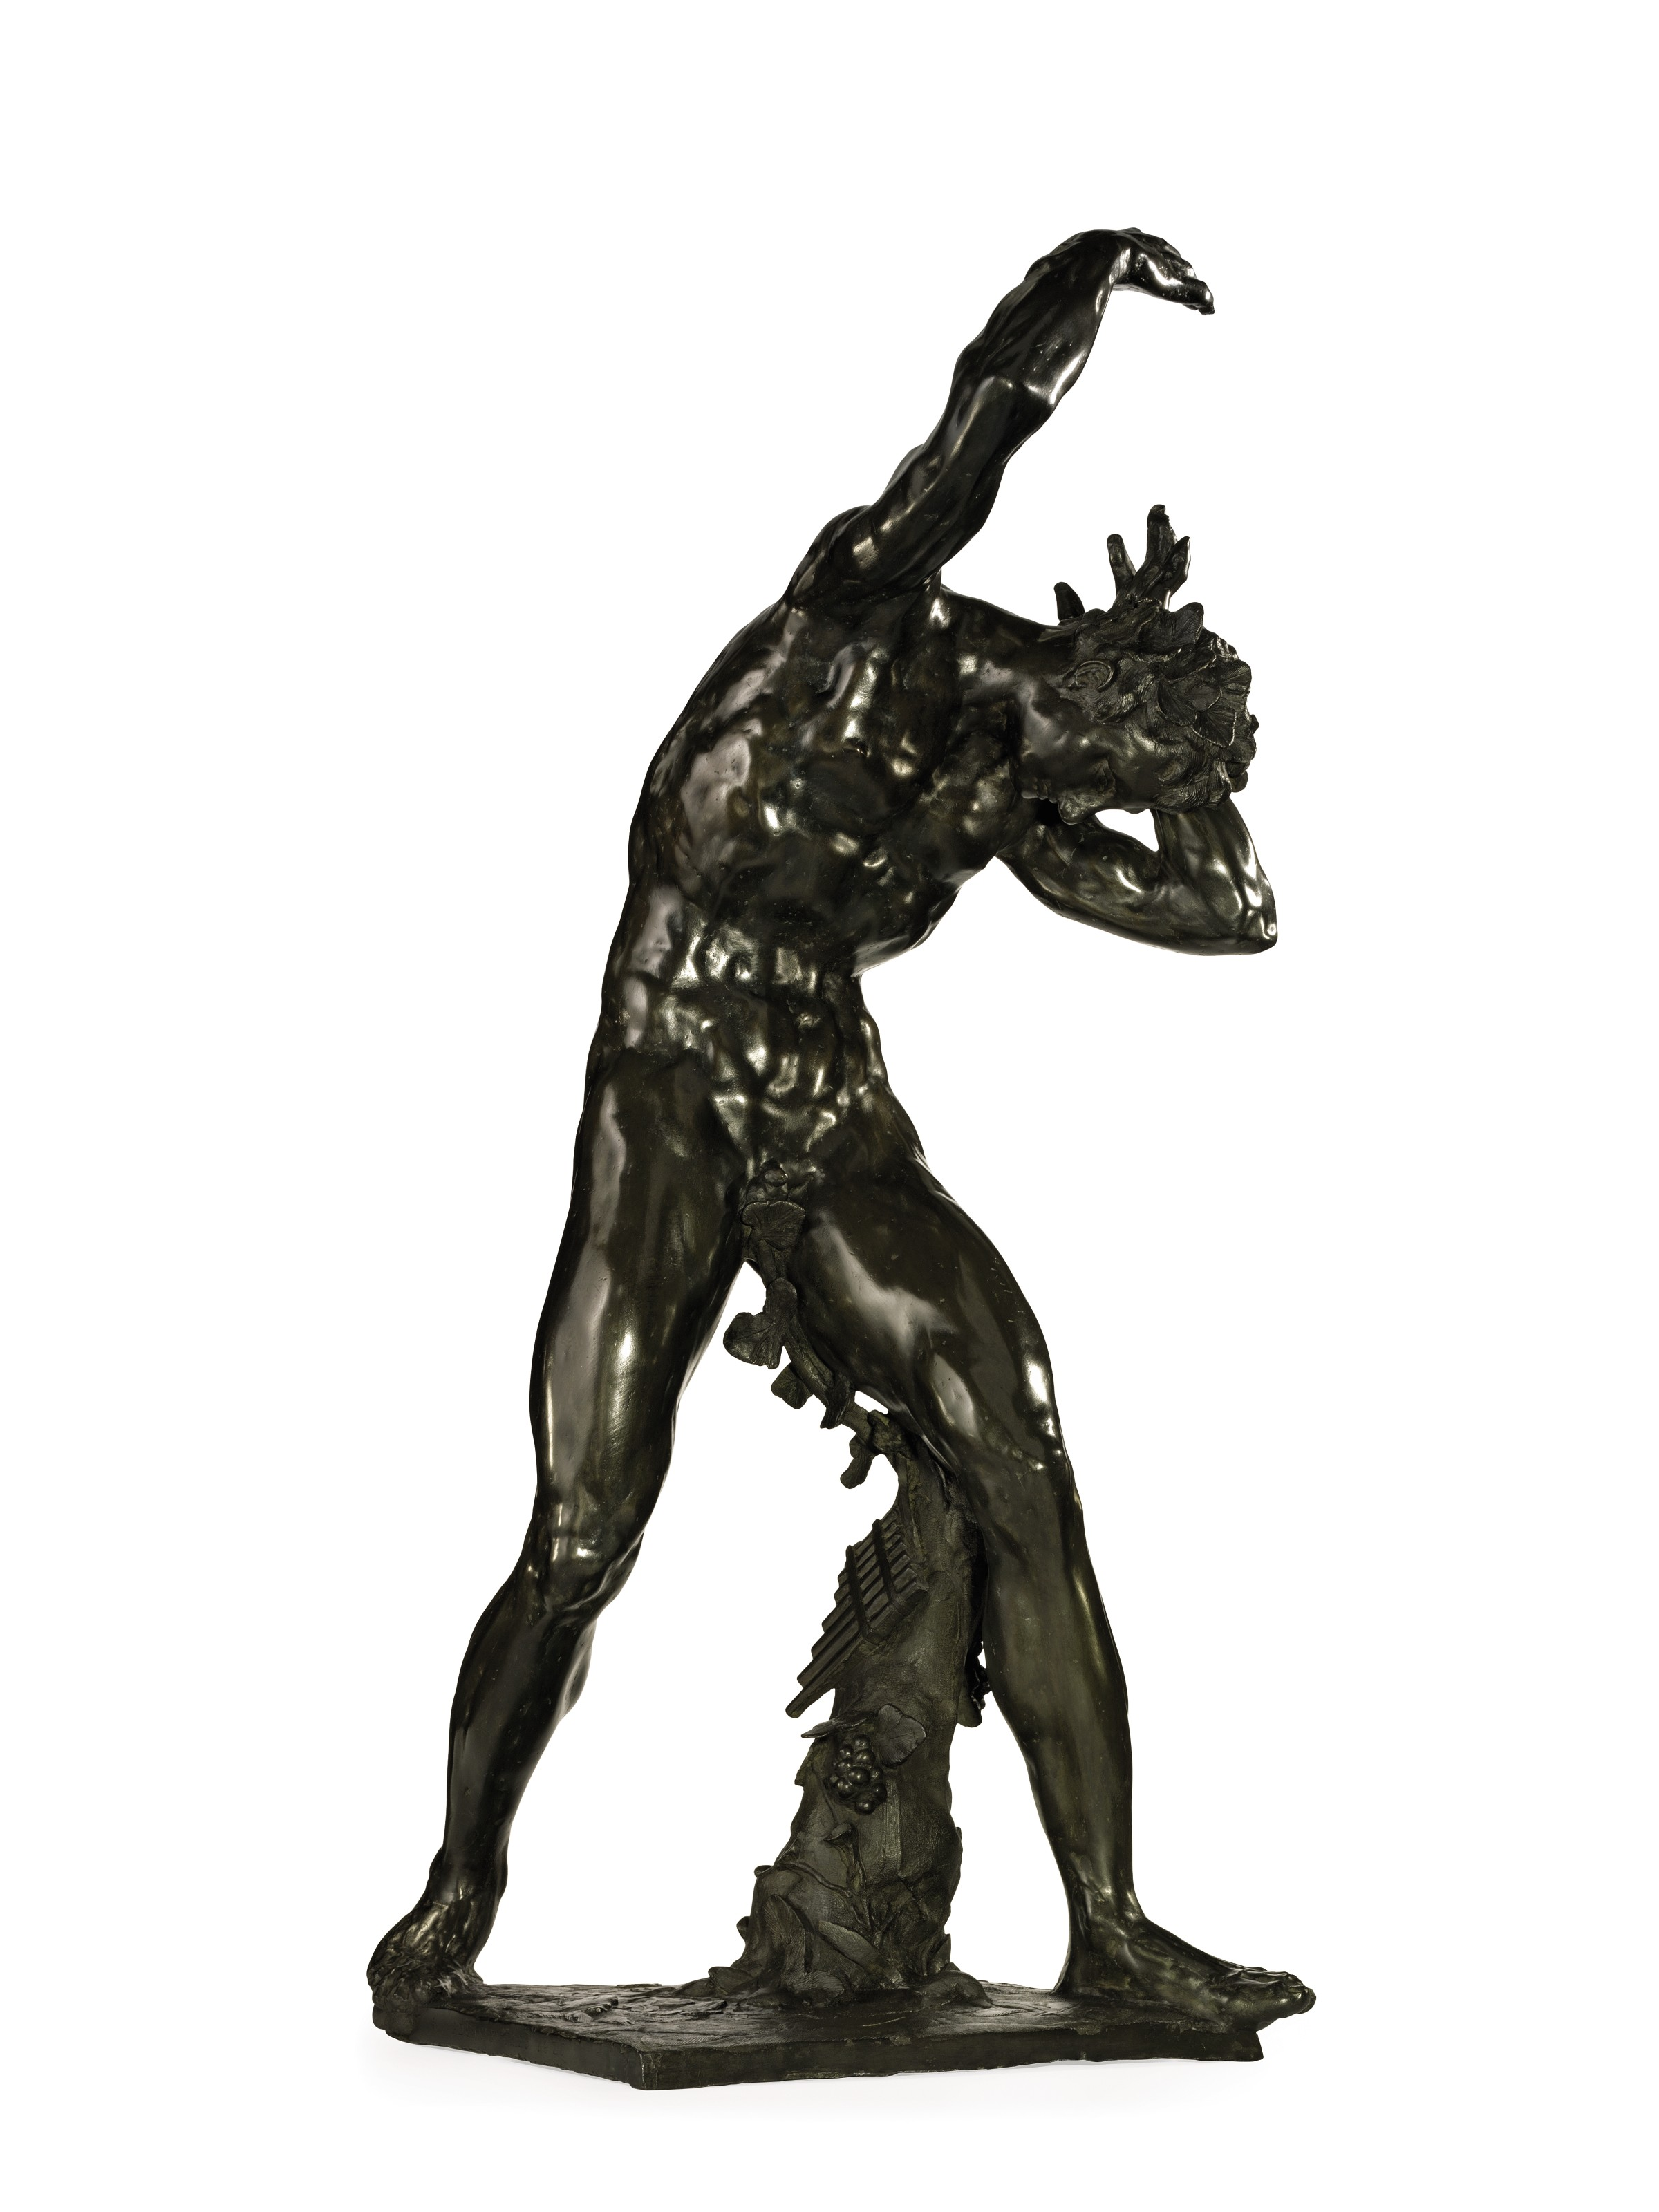 A BRONZE BACCHIC FIGURE SUPPORTING THE GLOBE